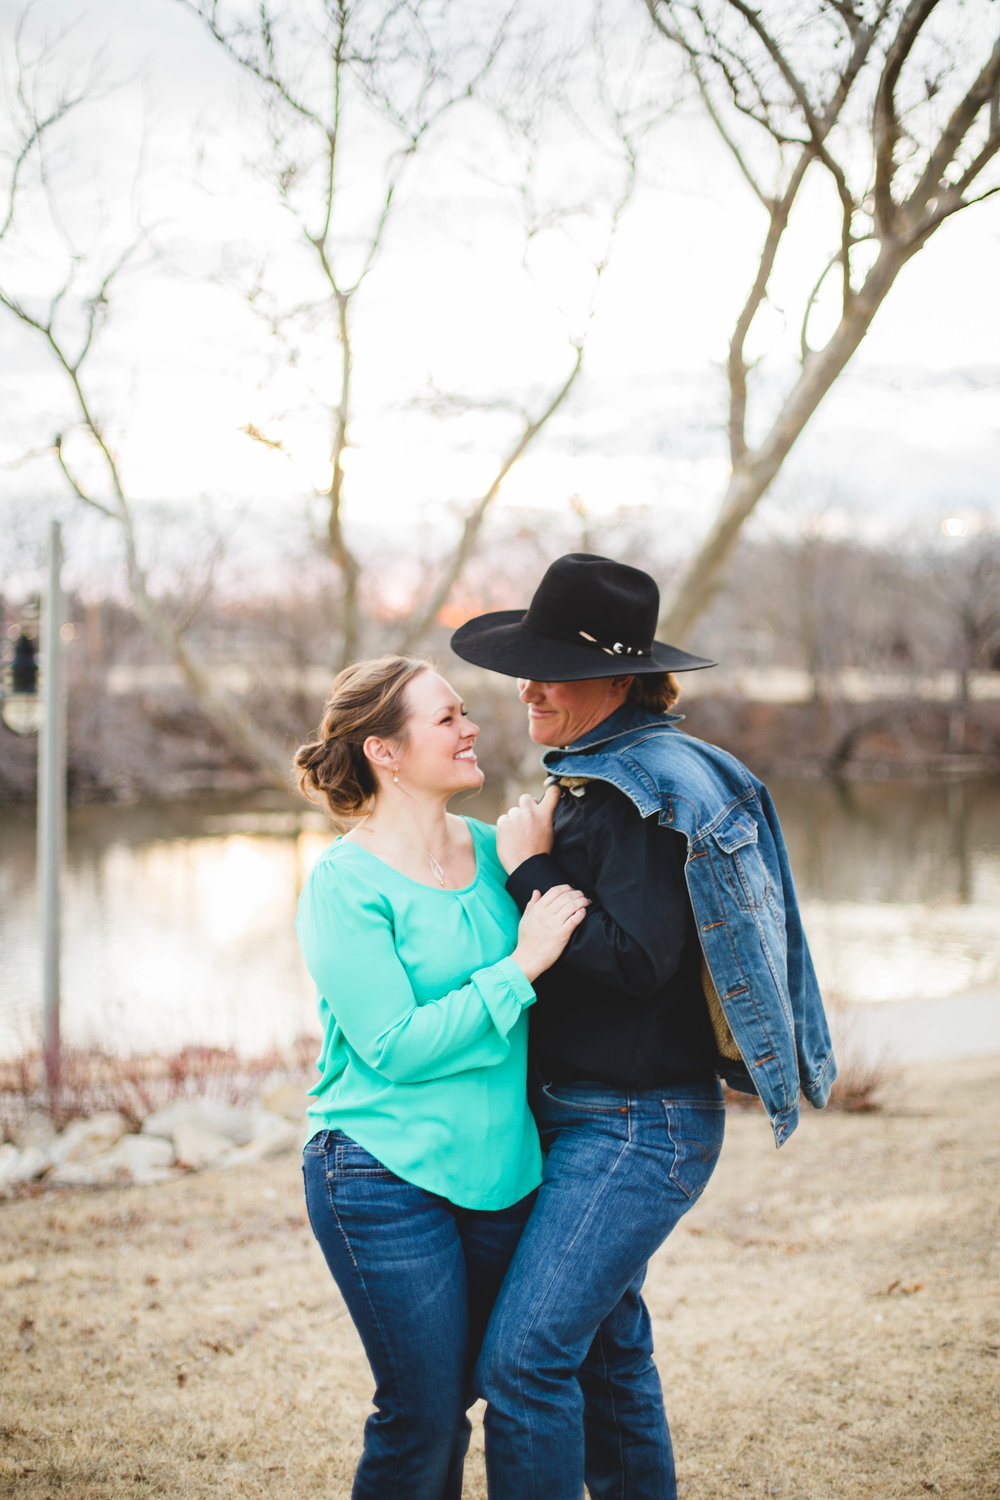 Microbrewery LGBTQ wedding engagement in Wichita Kansas by CJF Photography